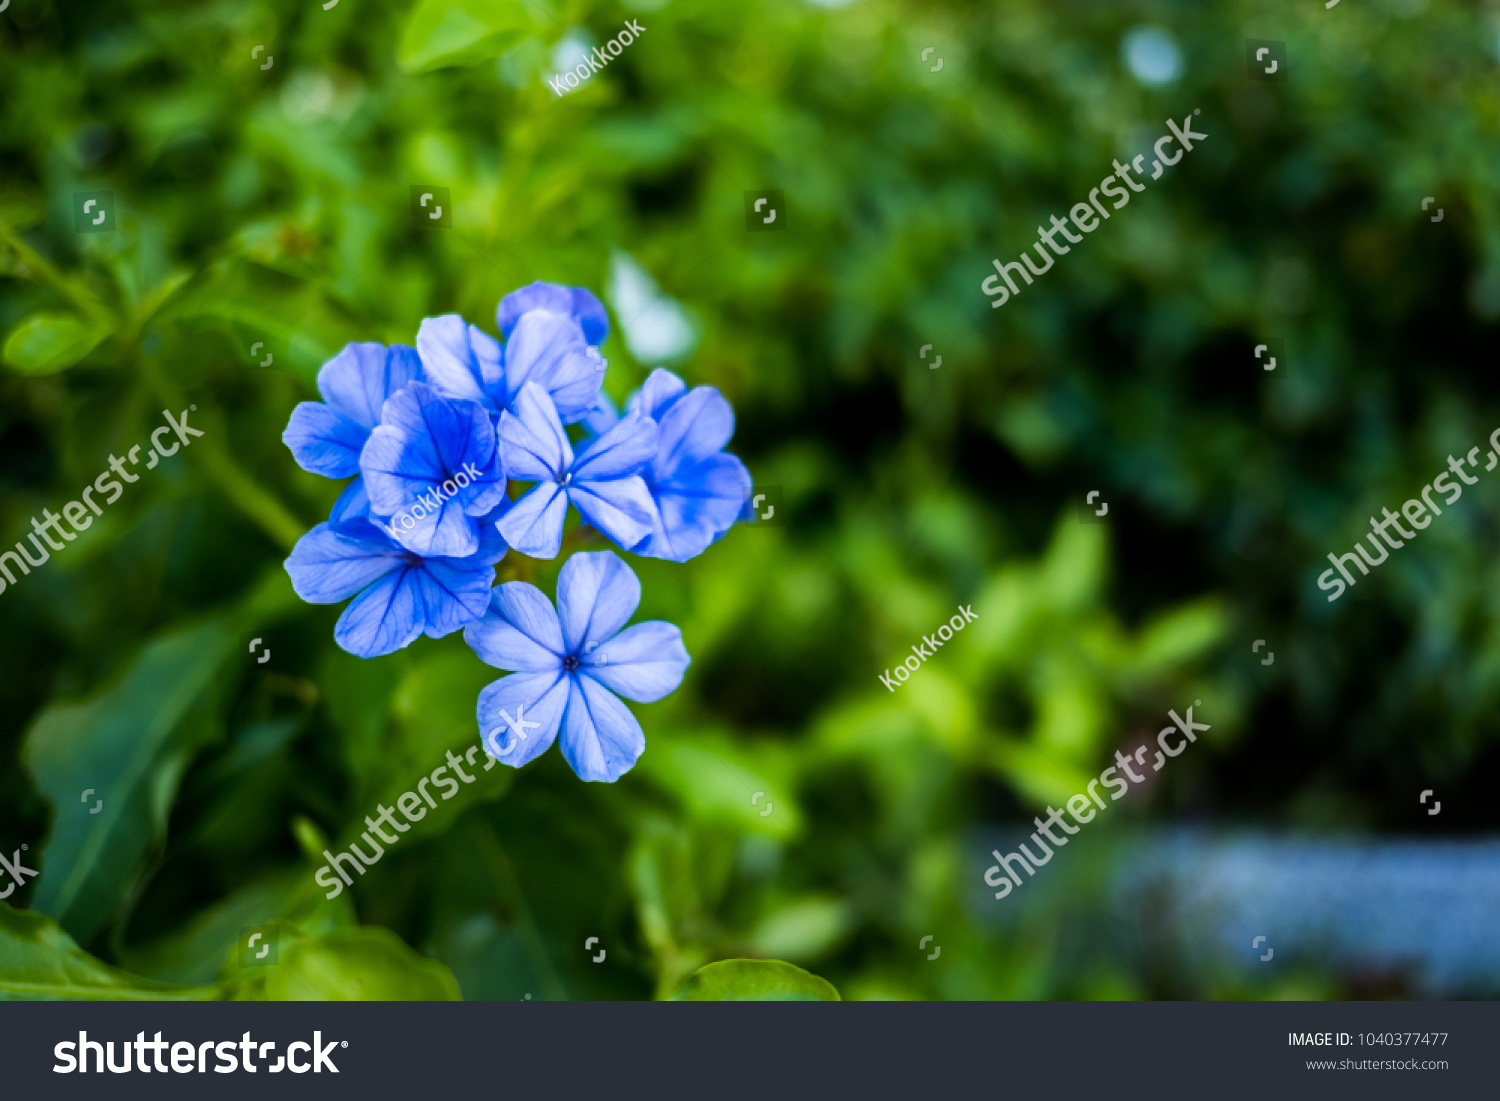 Purplish blue flowers plumbago auriculata bush blue stock photo purplish blue flowersumbago auriculata bush blue flowers in a flower bushwayside izmirmasajfo